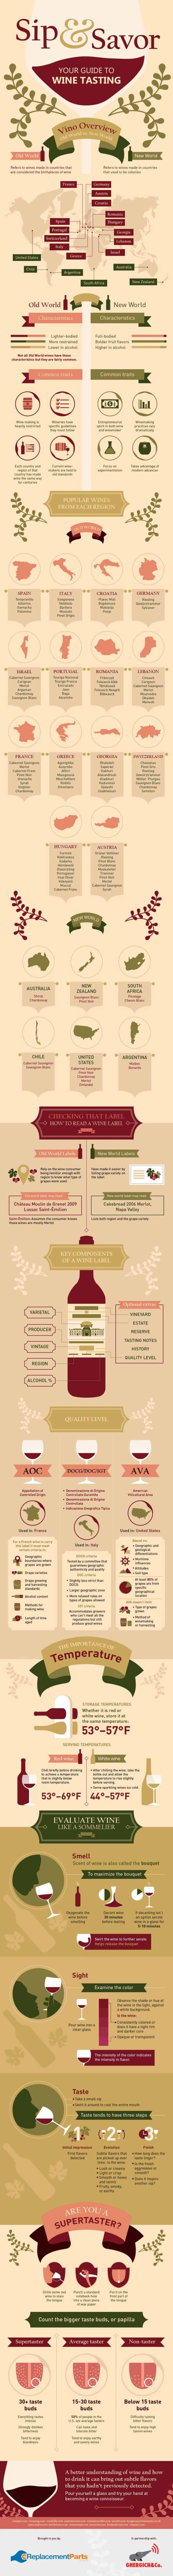 Complete guide to wine tasting infographic